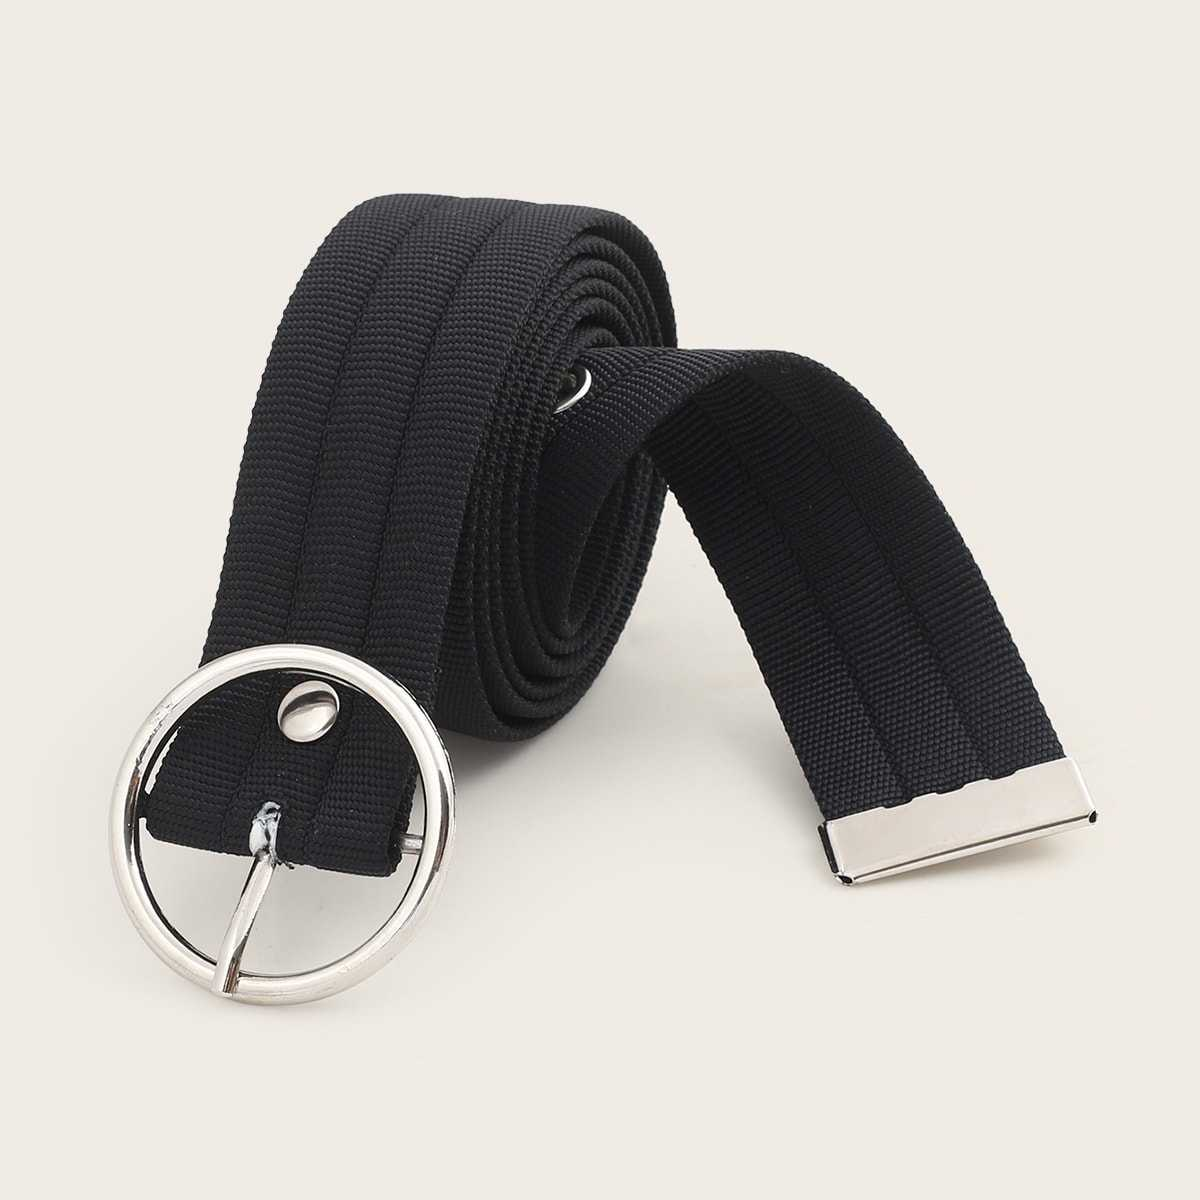 Guys O-ring Buckle Belt in Black by ROMWE on GOOFASH